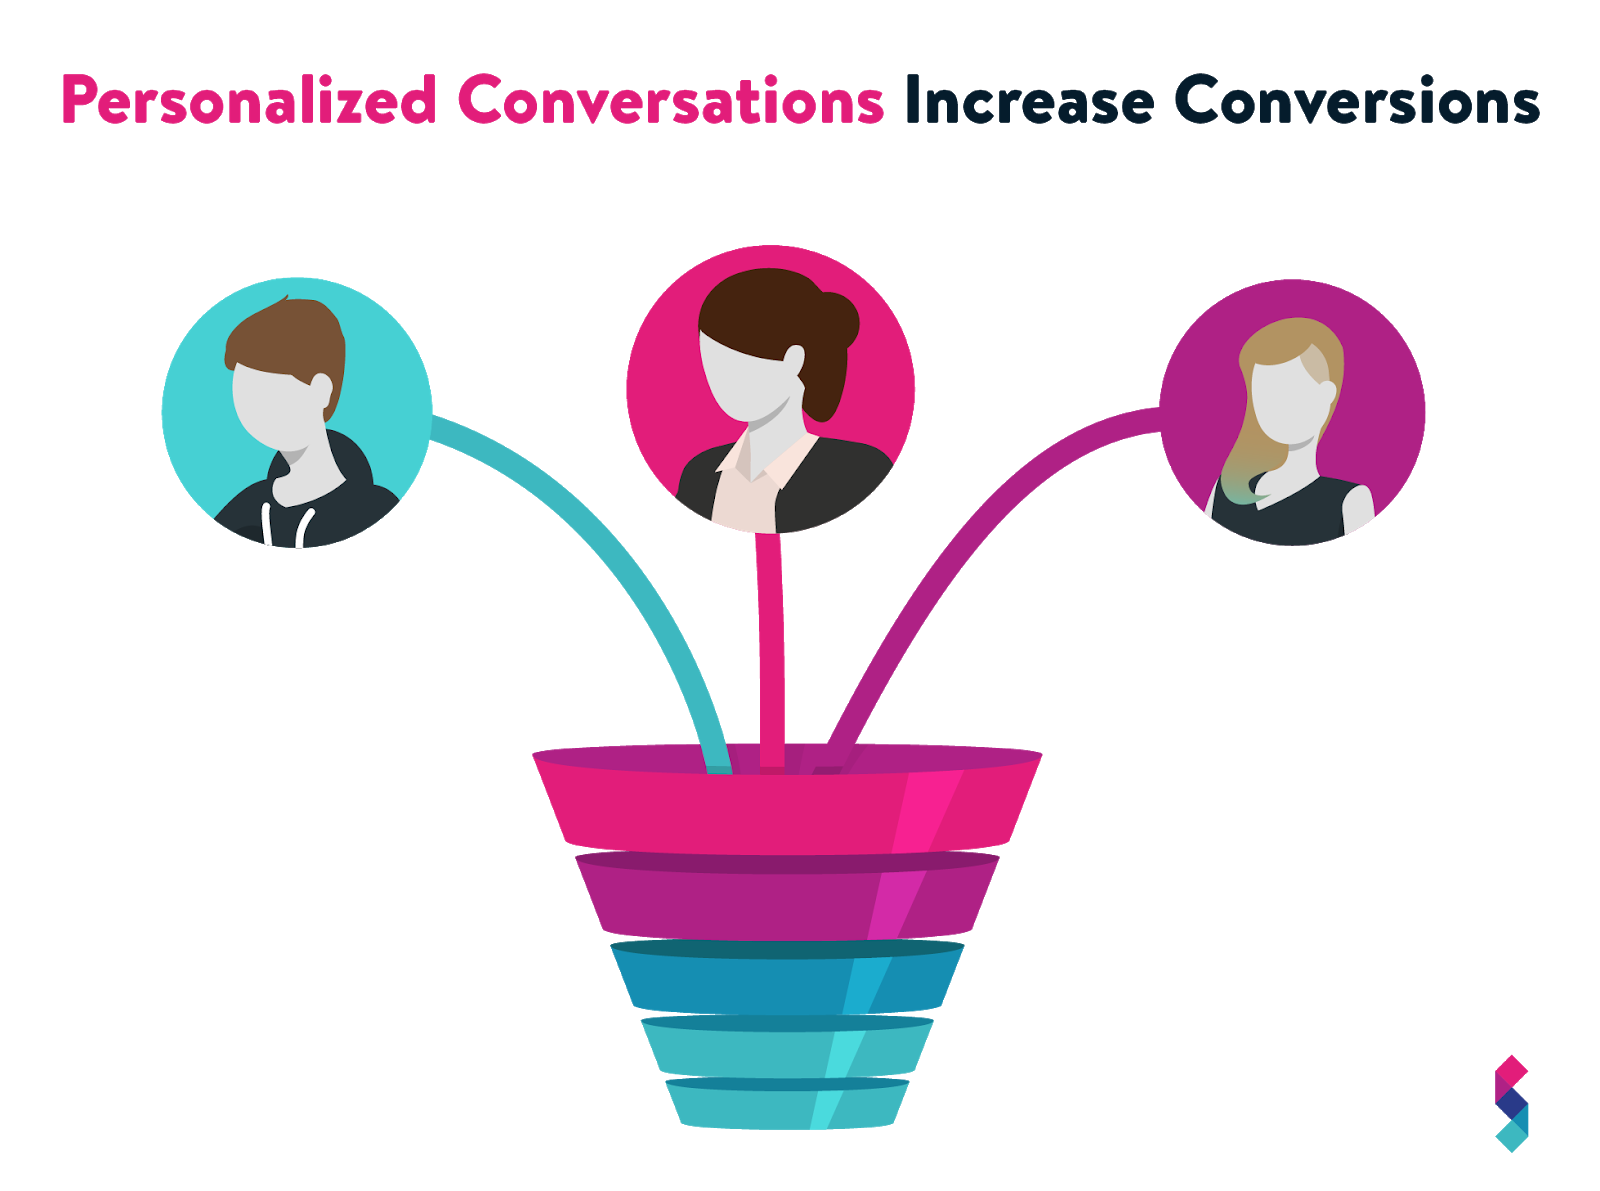 One-to-one text messaging helps capture and move leads through the sales funnel